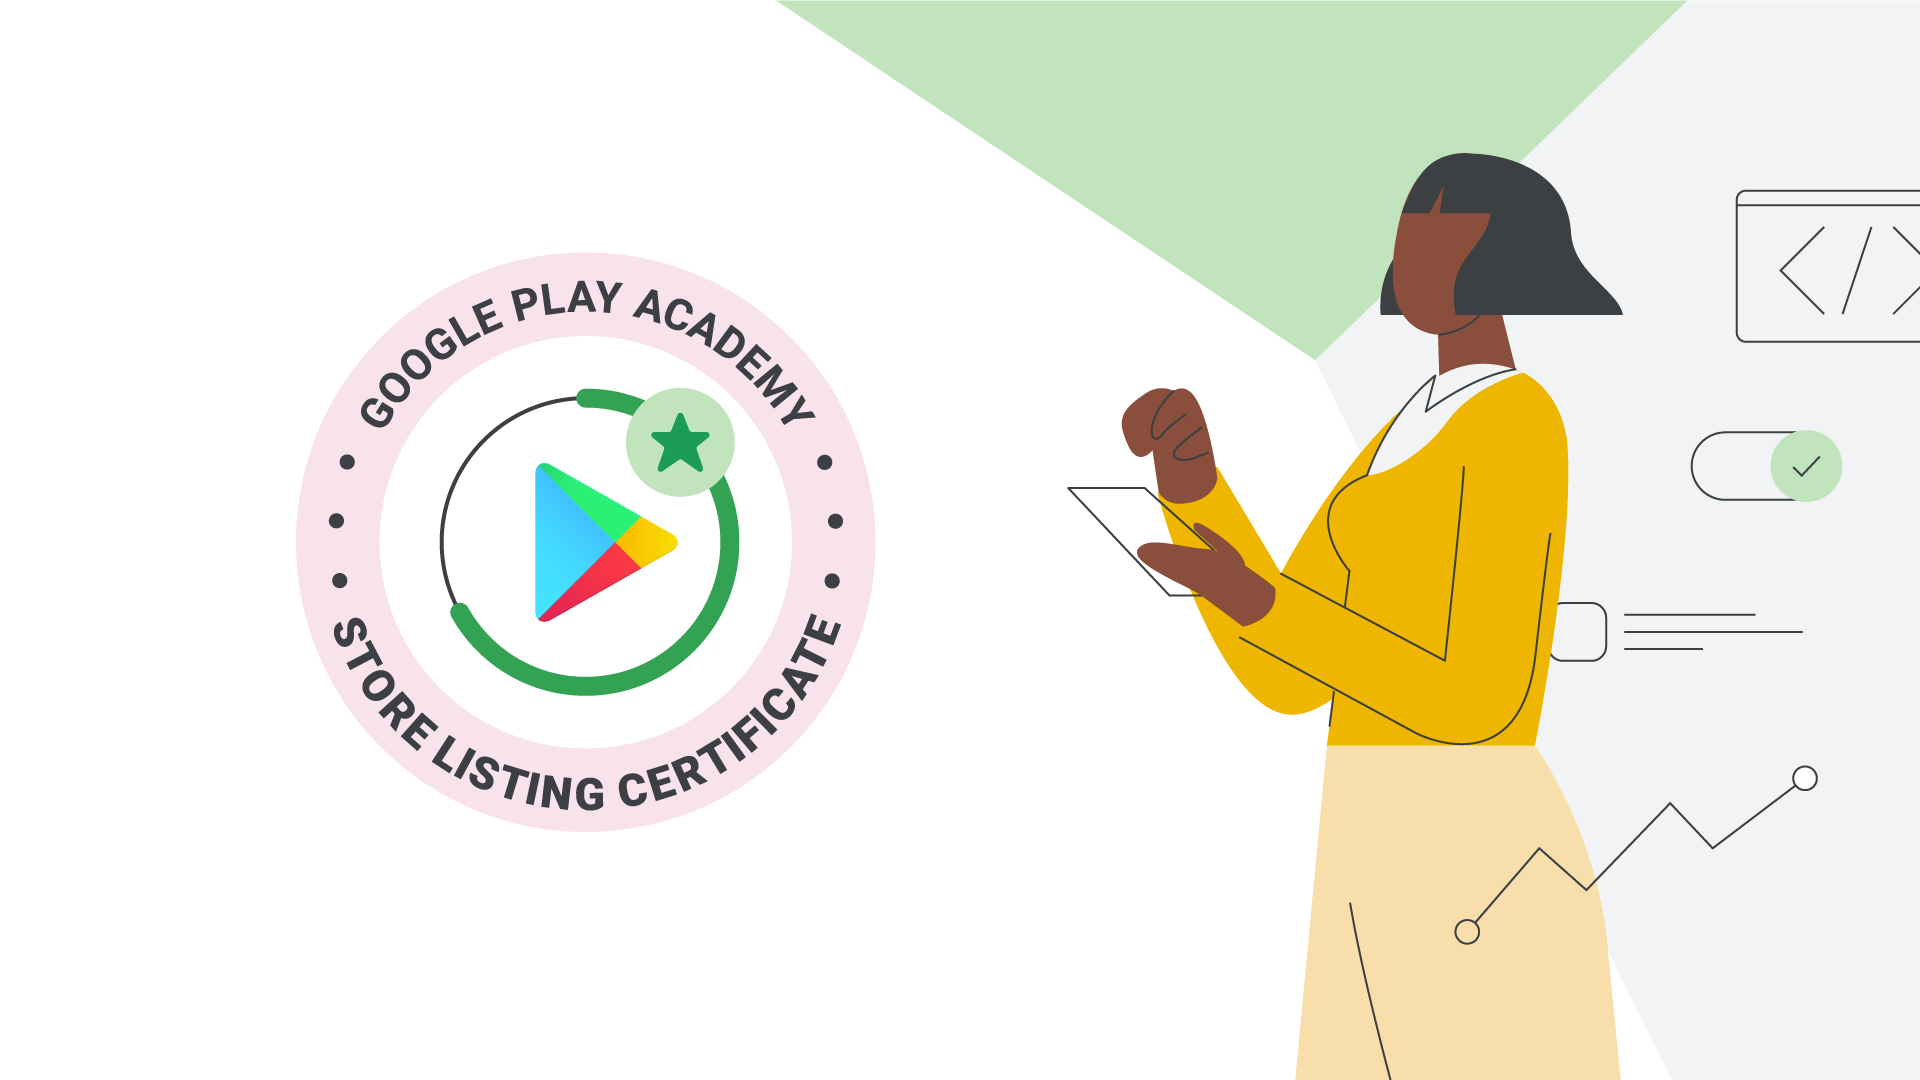 Illustration of a black woman with short hair holding a tablet with Google Play Academy Store Listing Certificate logo in the middle of the image